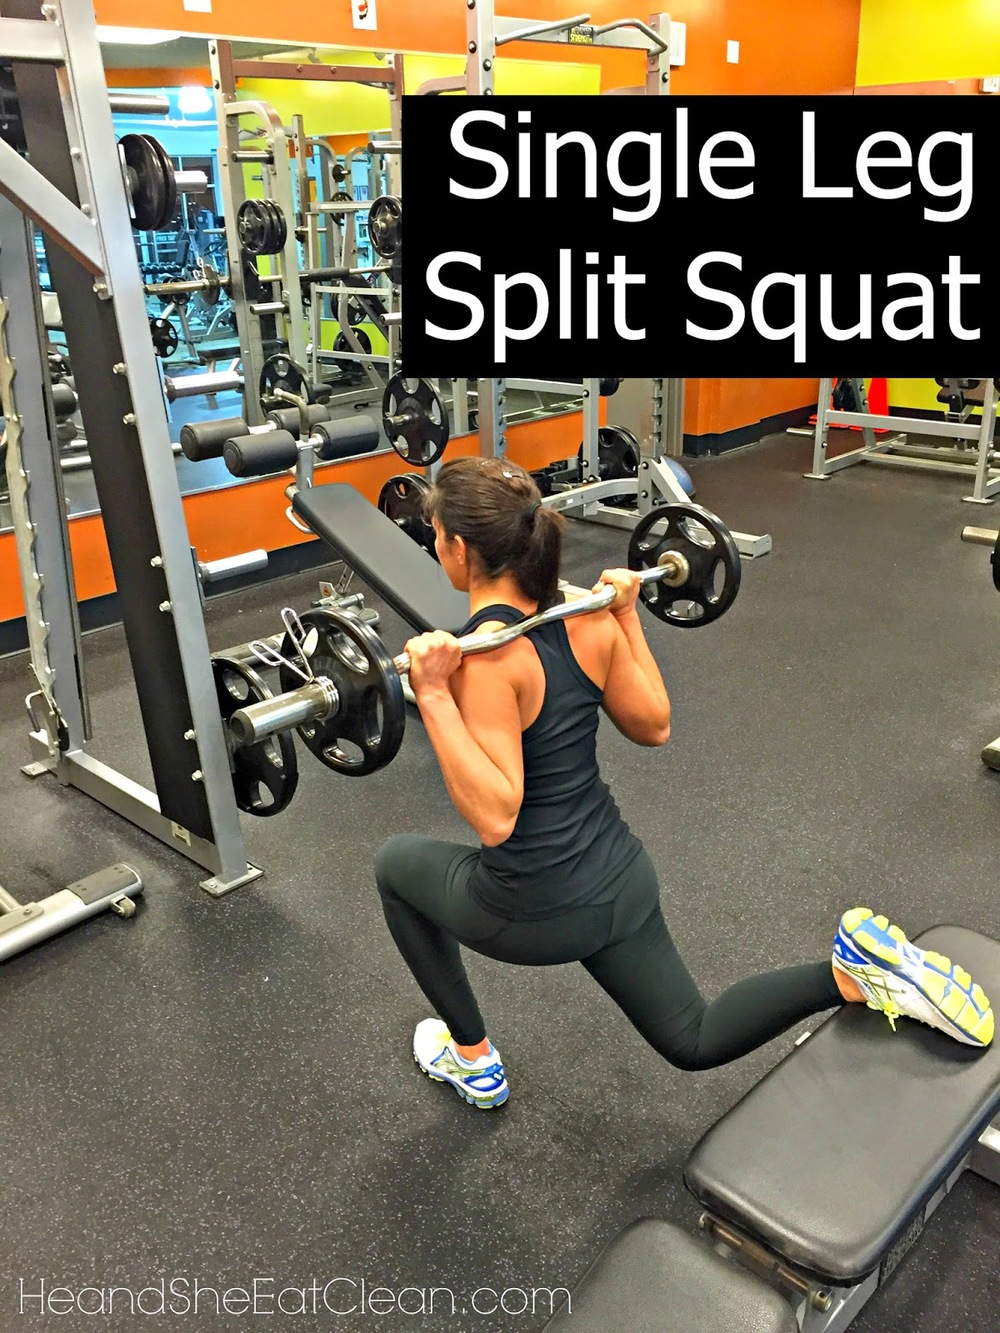 single-leg-split-squat-workout-fitness-lift-weights-he-and-she-eat-clean-she-sweats-workout-plan-fitness-lifestyle-legs.jpg